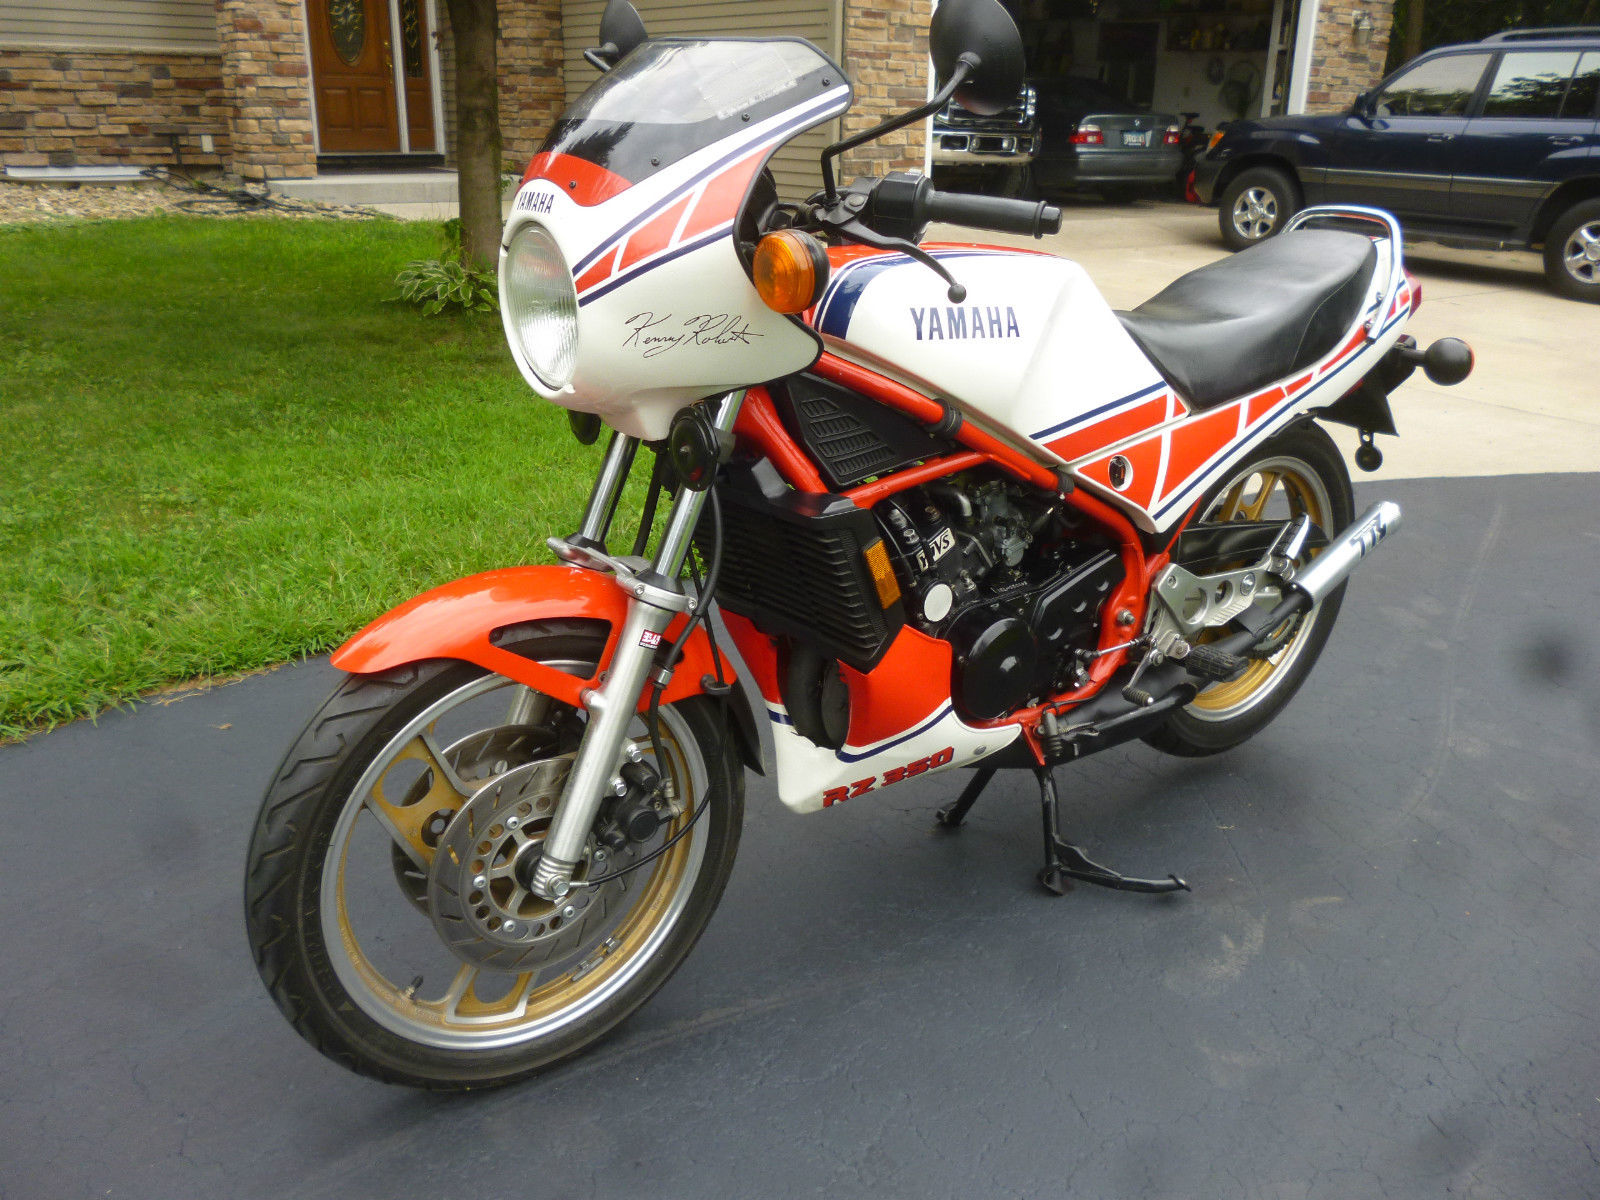 Simple and effective 1985 yamaha rz 350 kenny roberts for Yamaha rz for sale